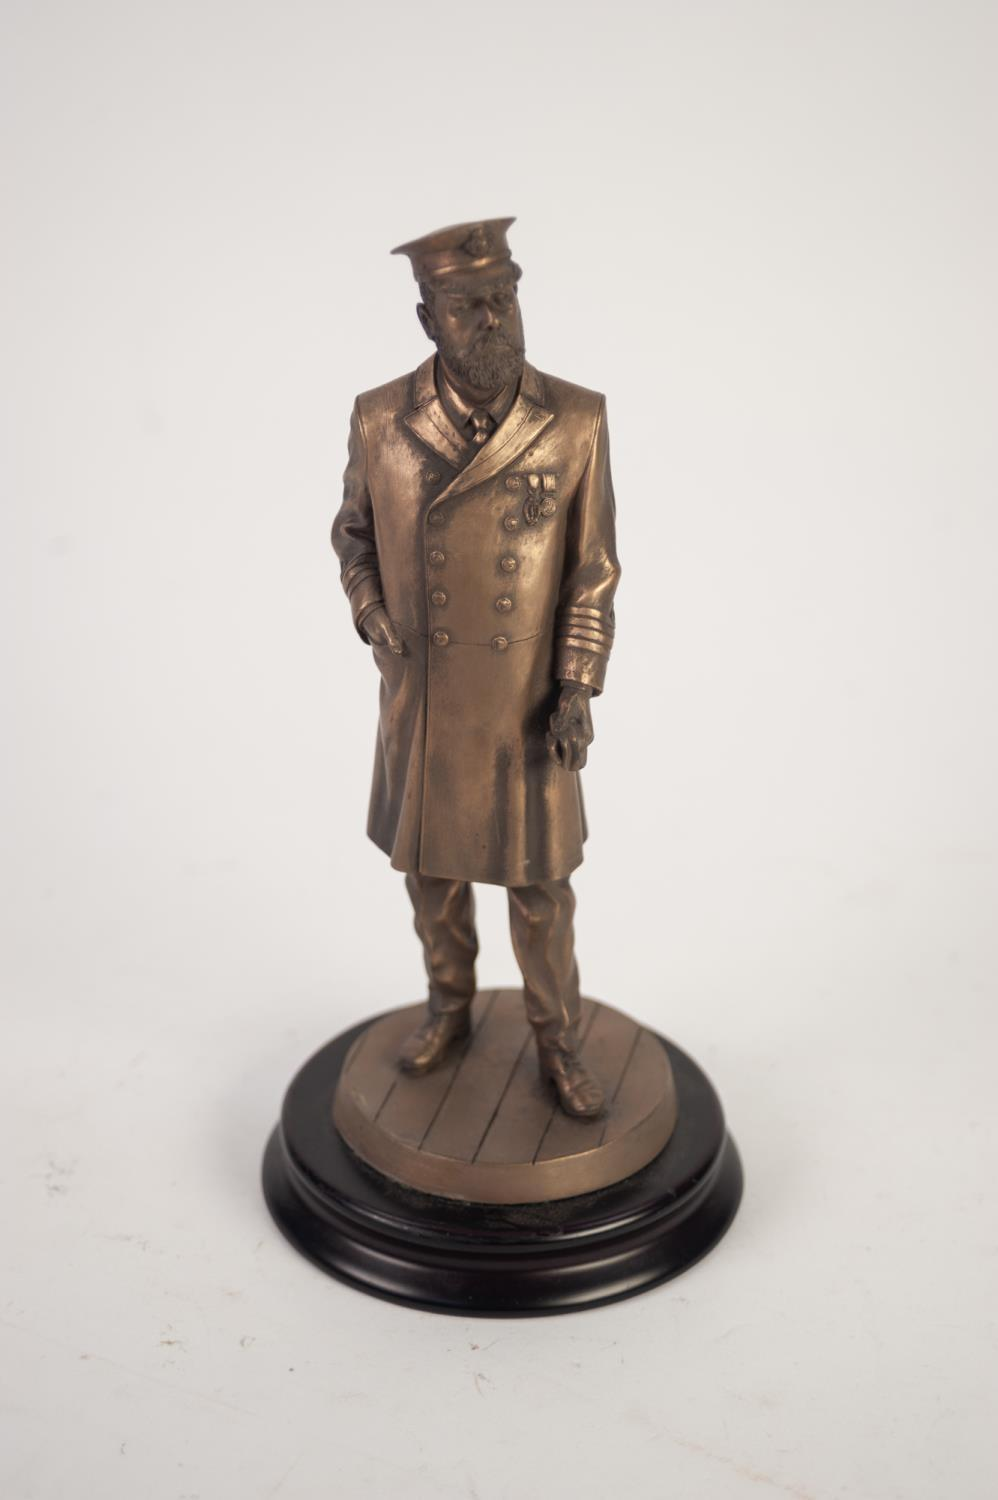 Lot 42 - MODERN DETAILED BRONZED COMPOSITION STANDING FIGURE OF GEORGE V IN MILITARY UNIFORM, stamped PCS